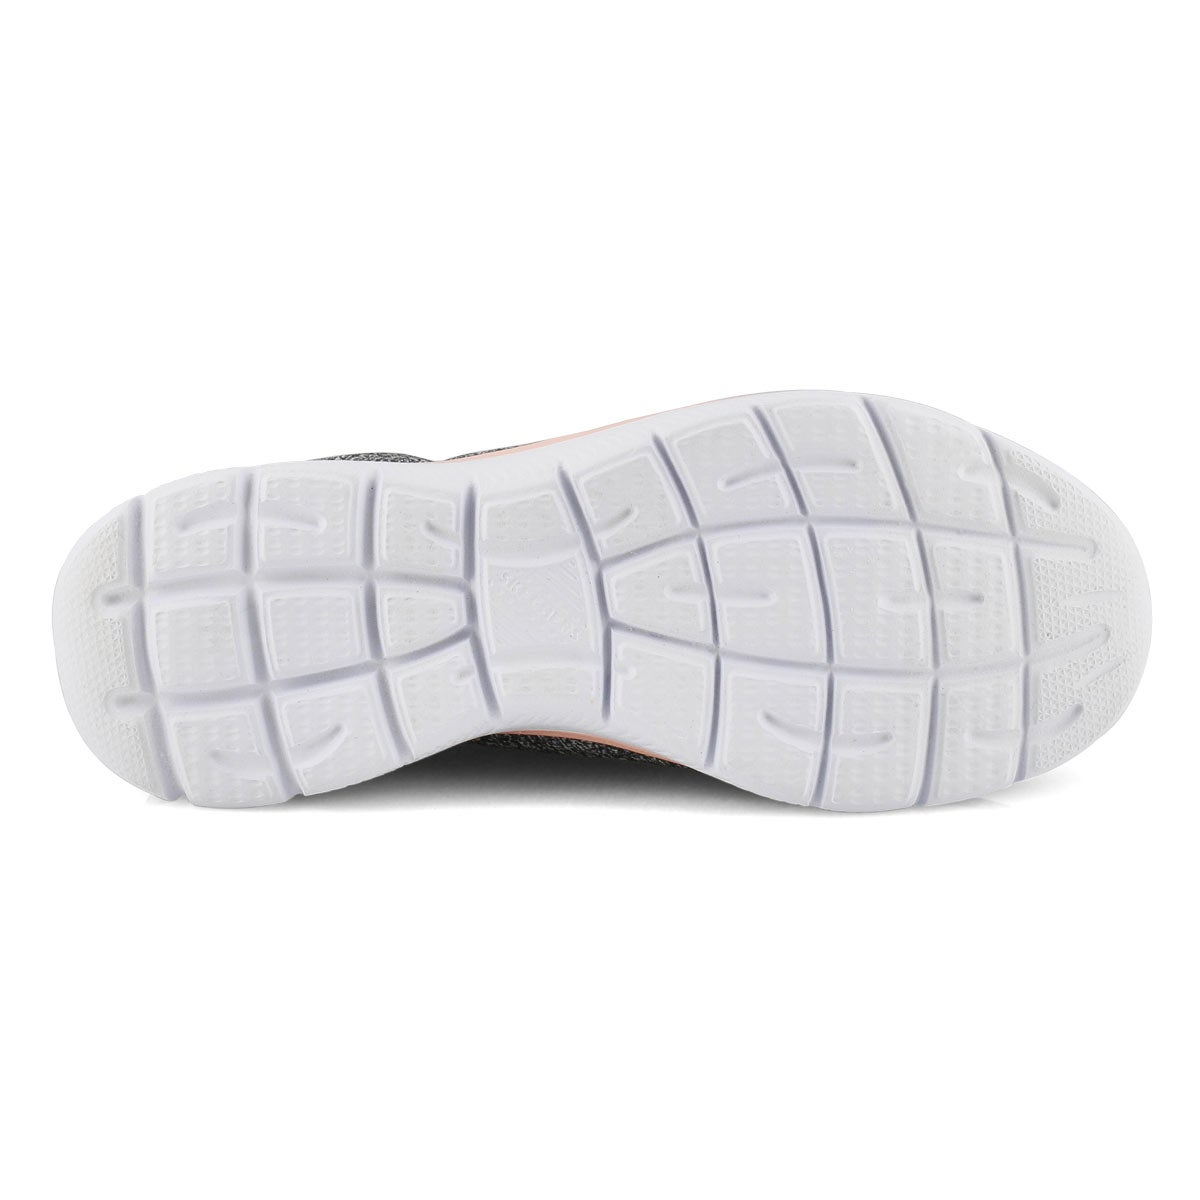 Lds Quick Getaway bk/crl slip-on runner